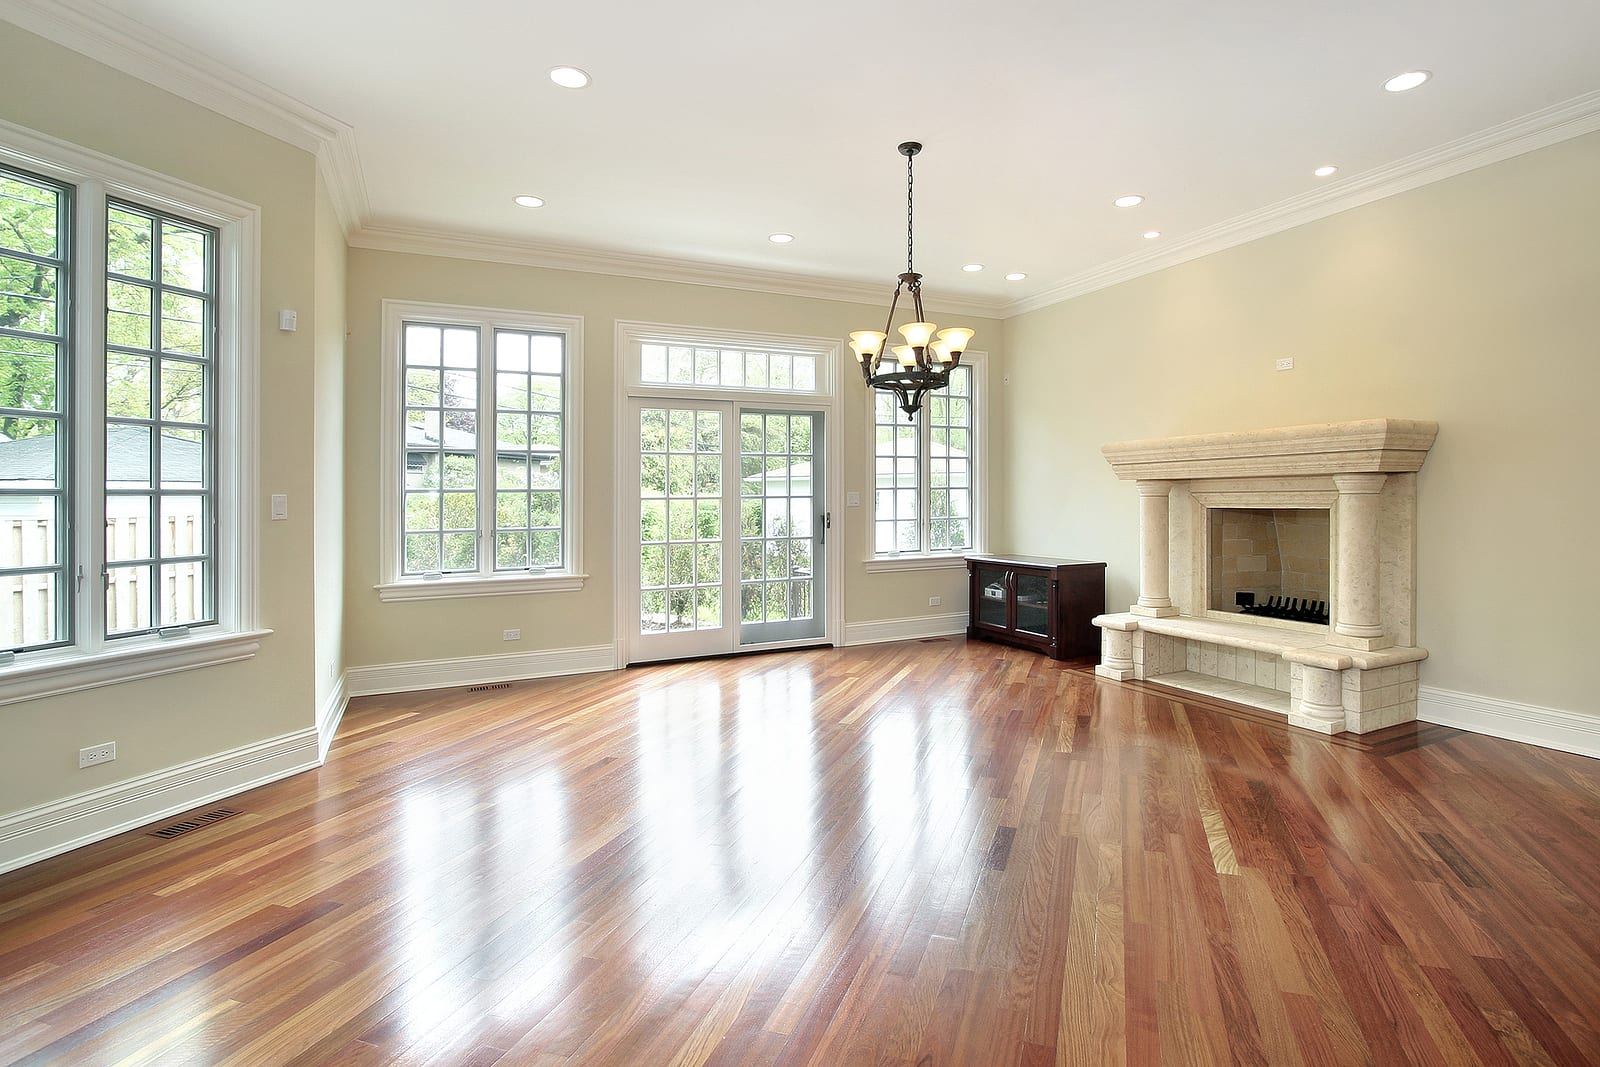 Choosing Hardwood Floors